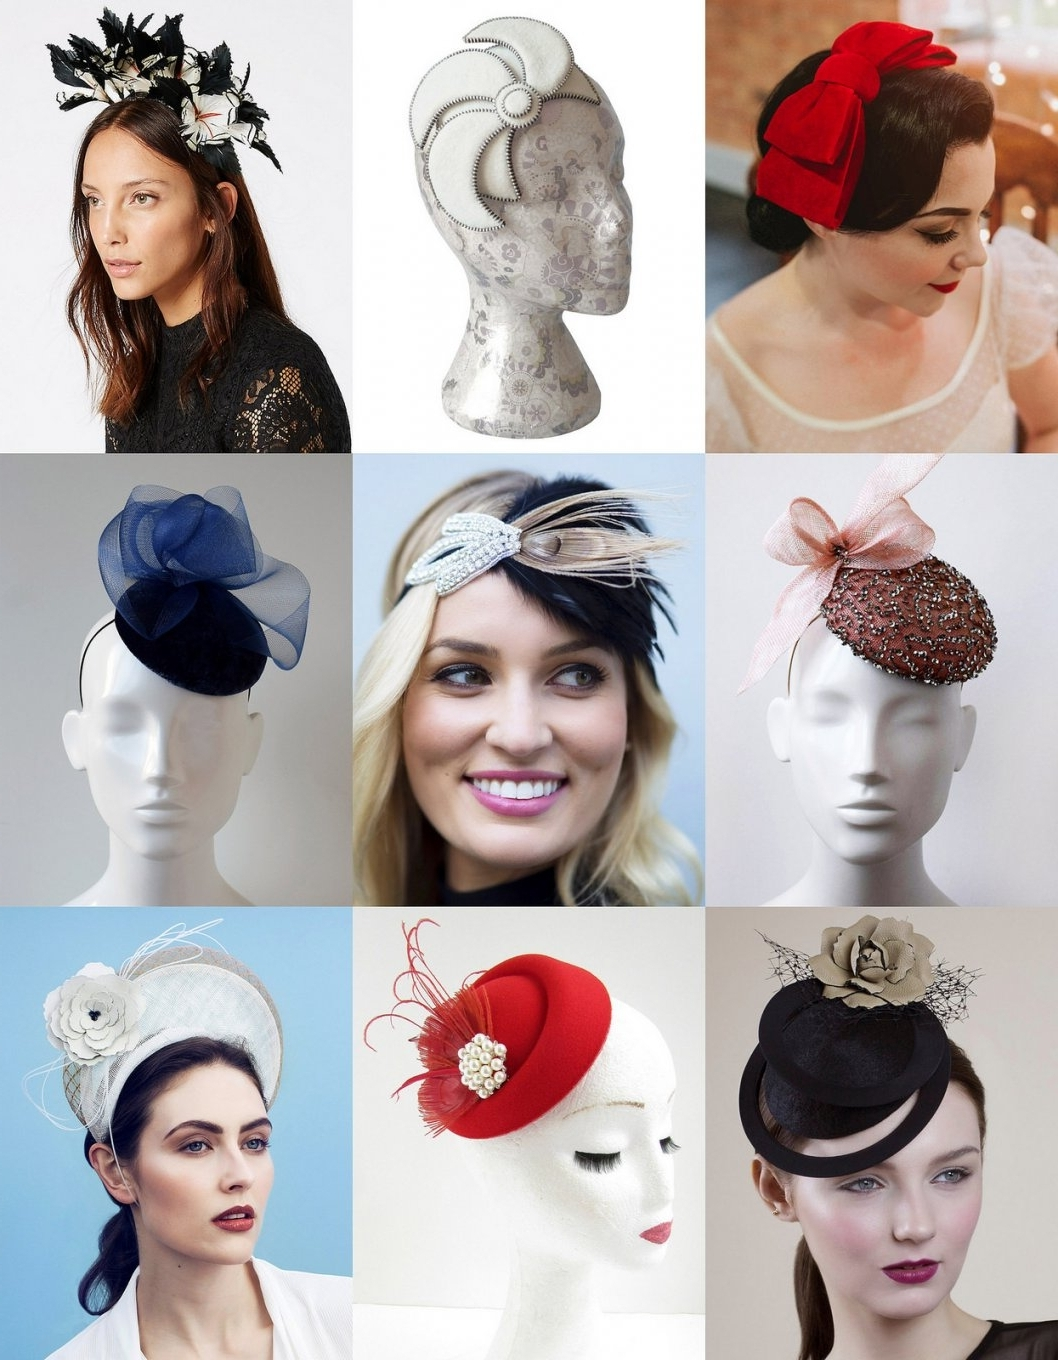 34 Modern Wedding Guest Hats And Fascinators #saturdaysharelinkup Within Trendy Wedding Guest Hairstyles For Long Hair With Fascinator (View 1 of 15)